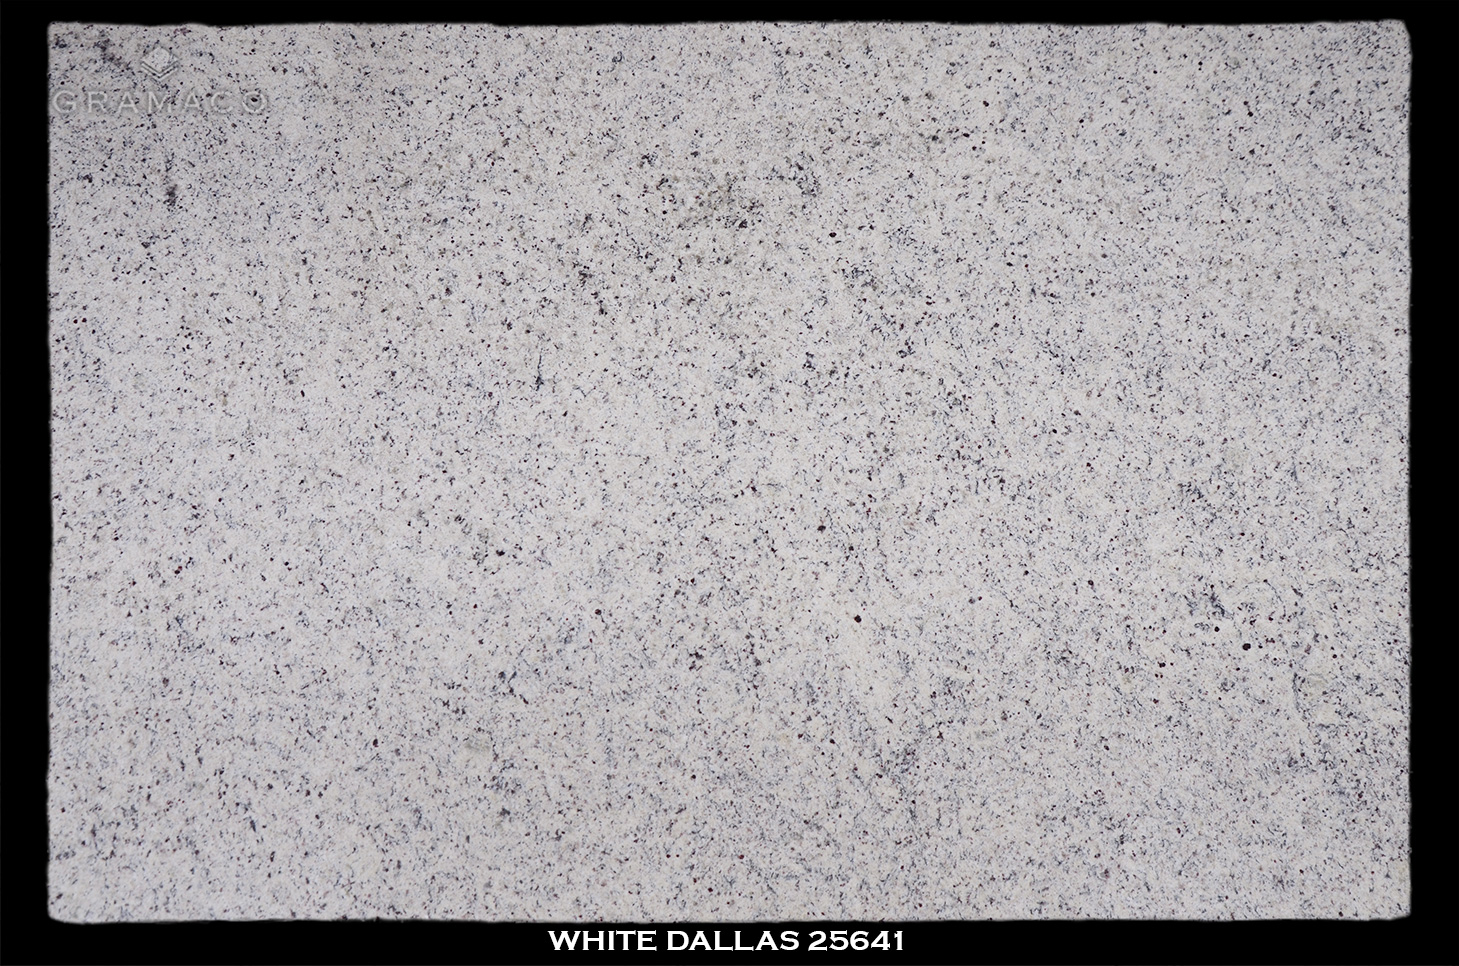 WHITE-DALLAS-25641